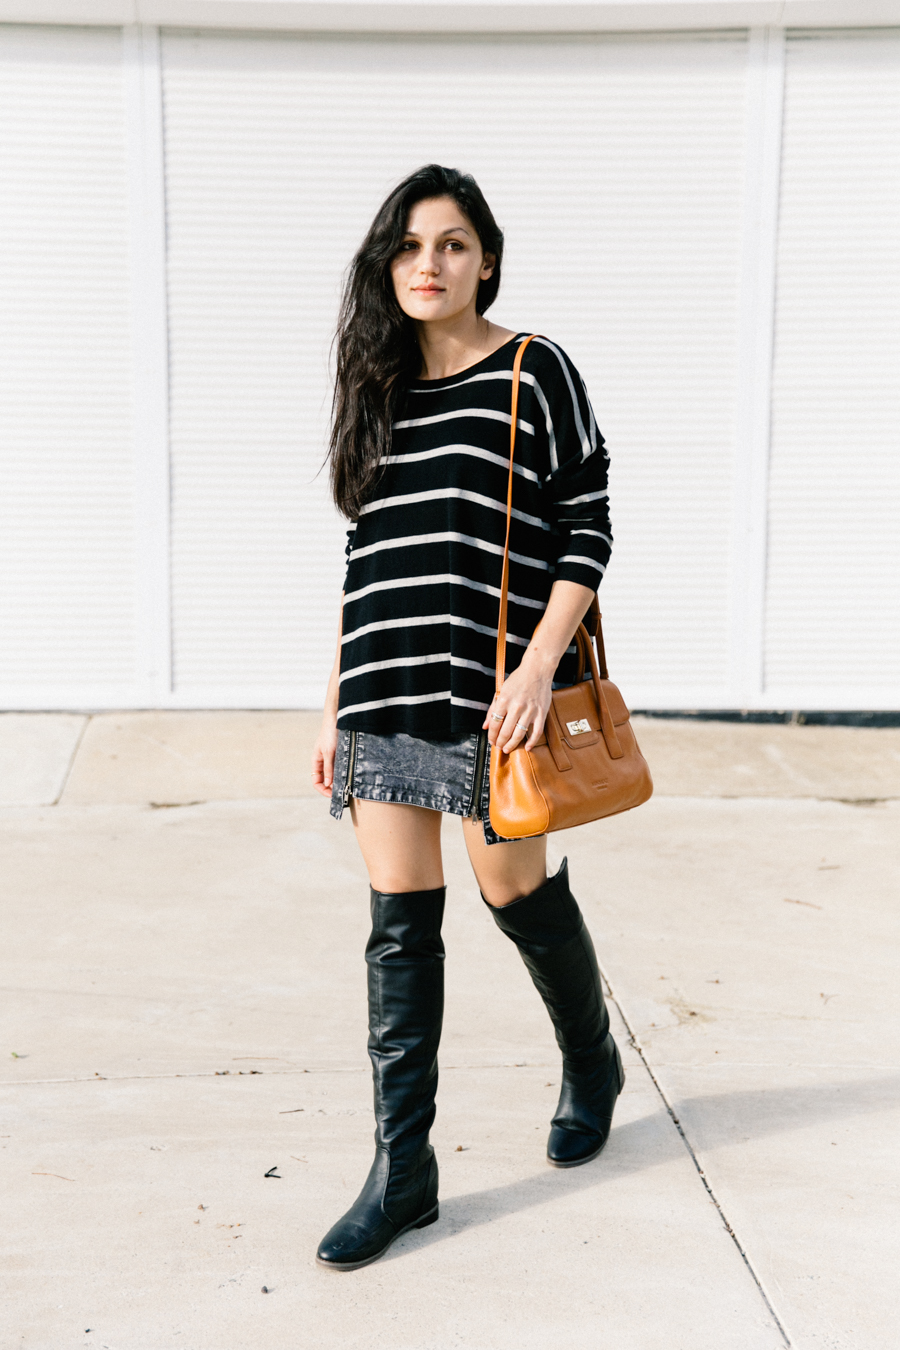 Mini skirt with knee high boots outfit.